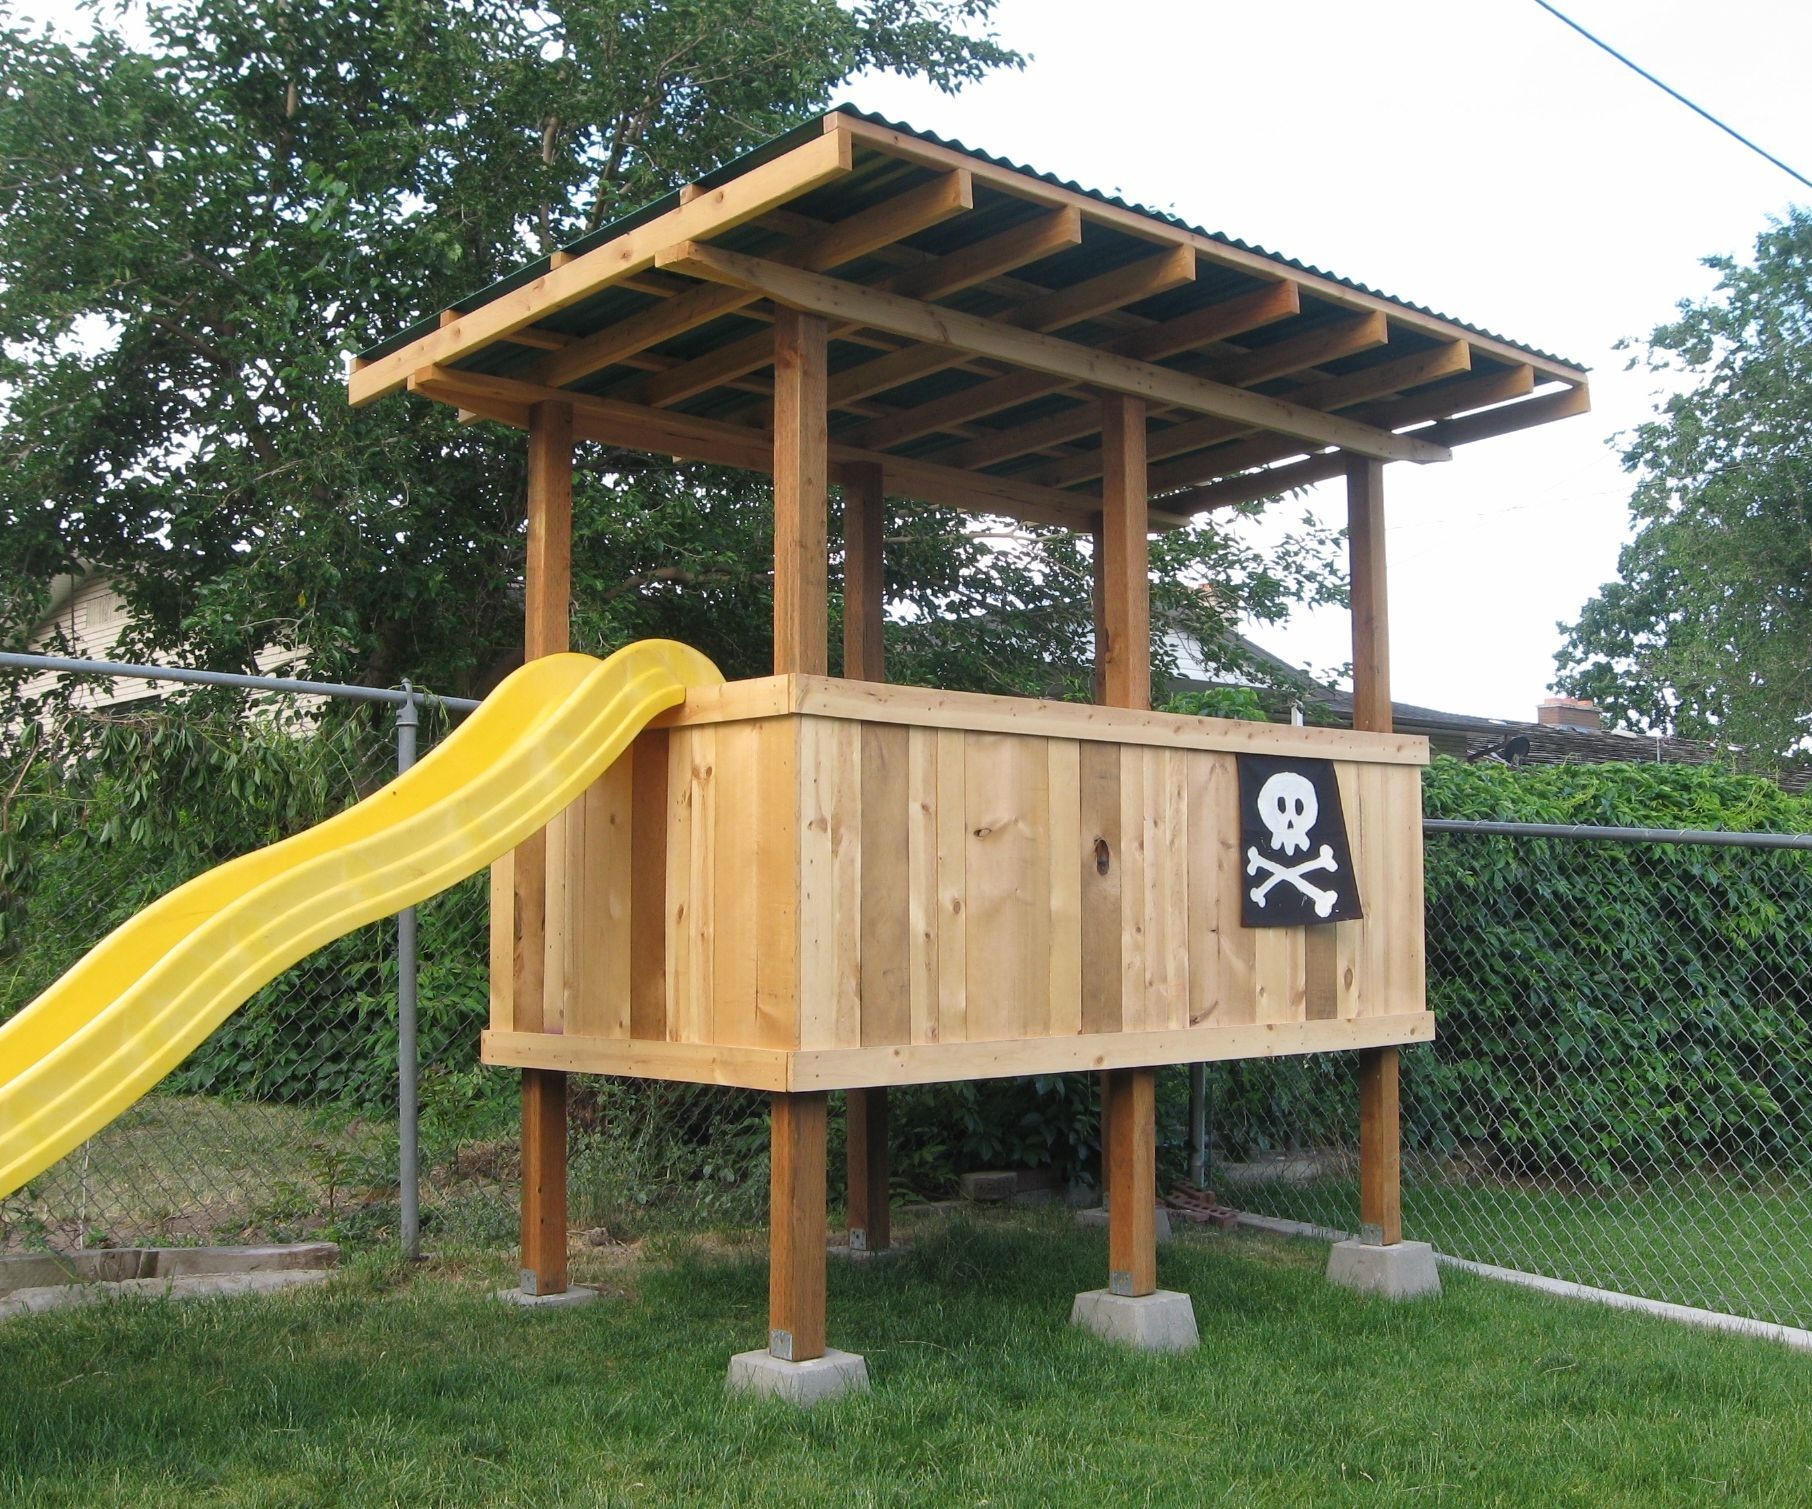 How to Build a Treeless Tree House | Diy playground ...